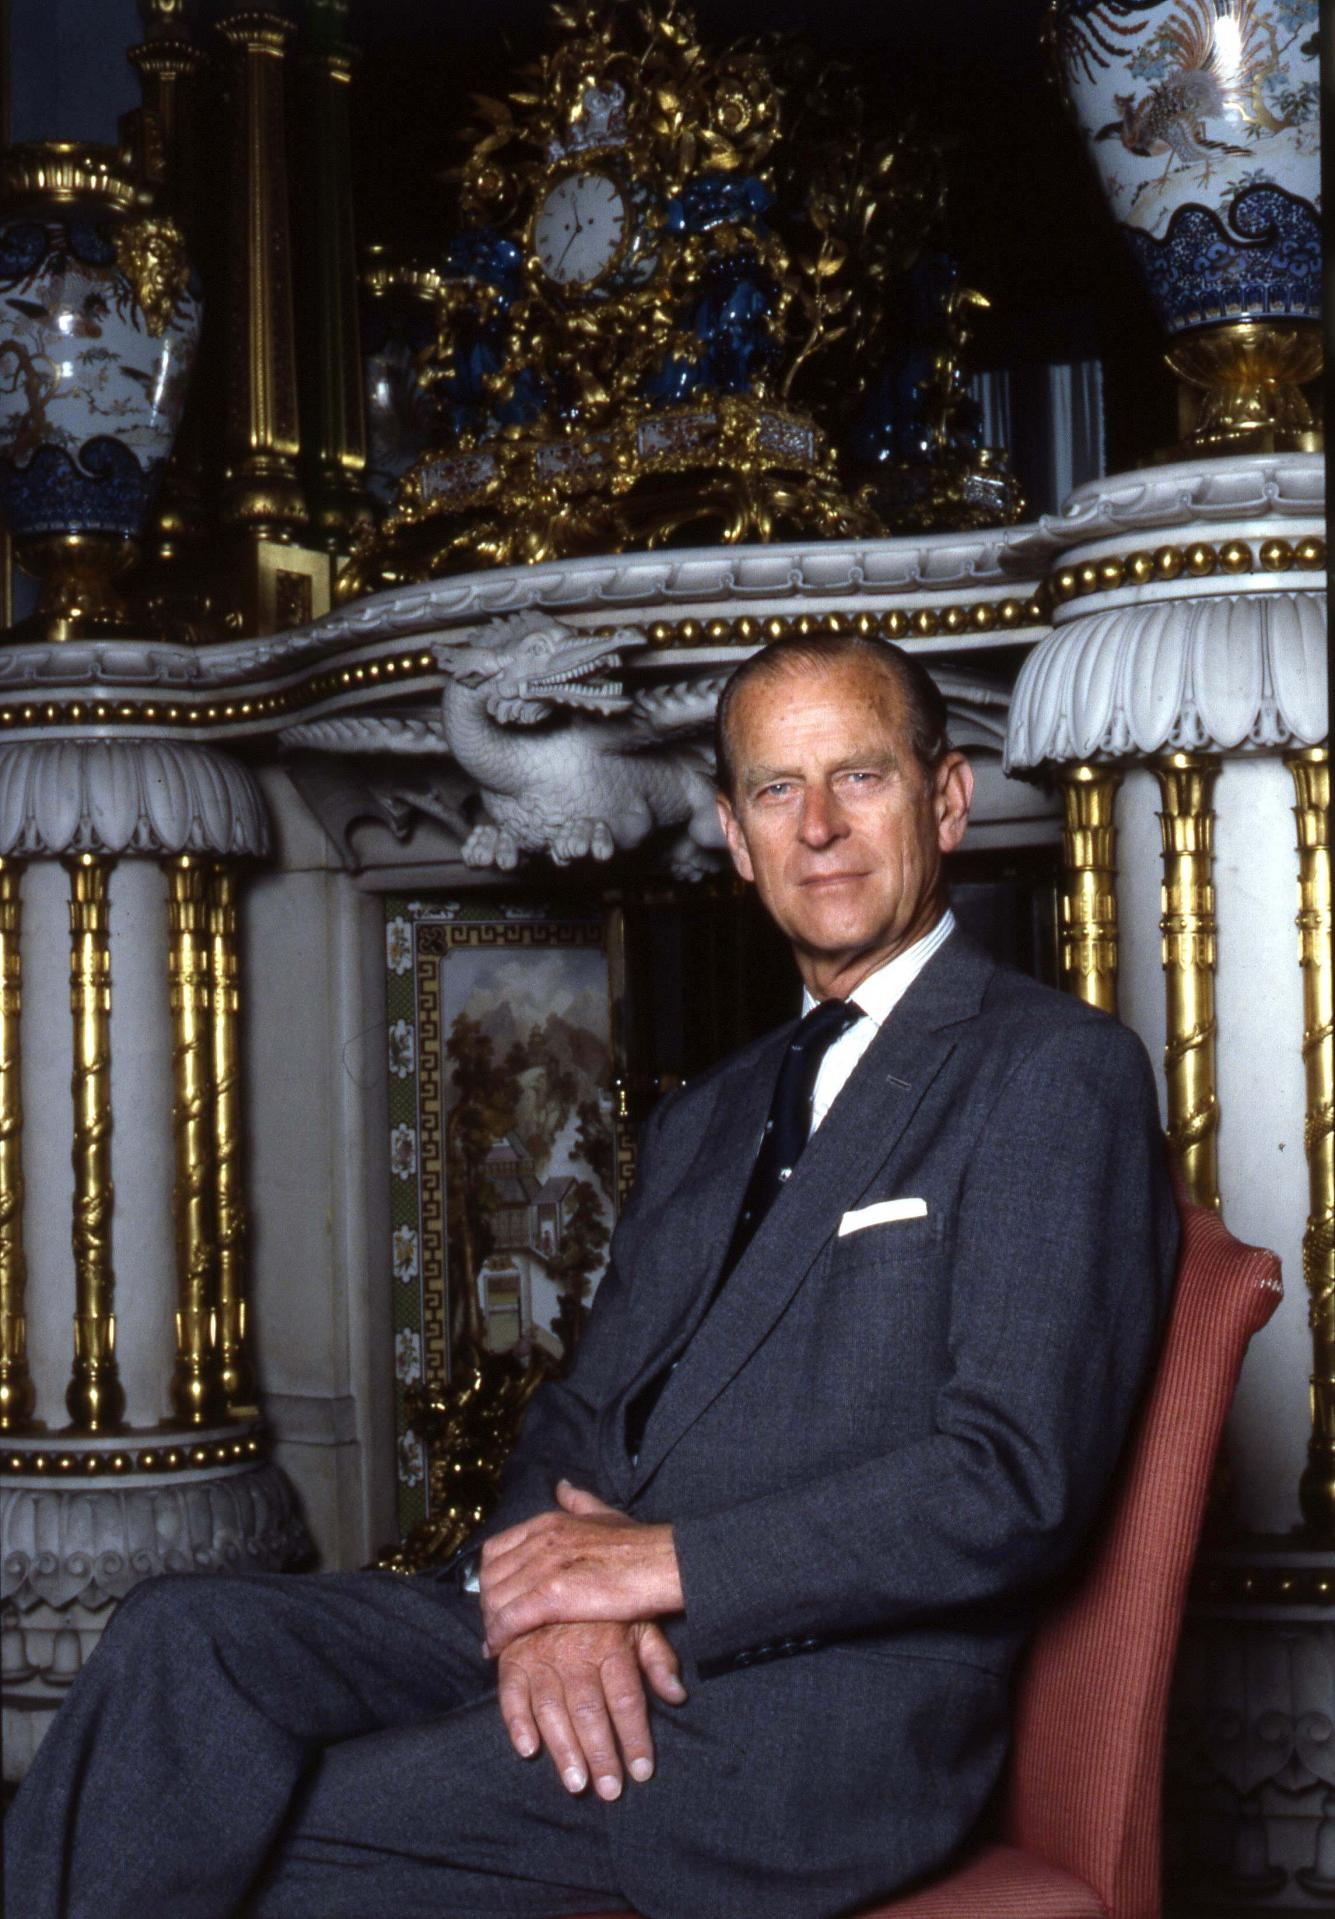 The duke of edinburgh 2